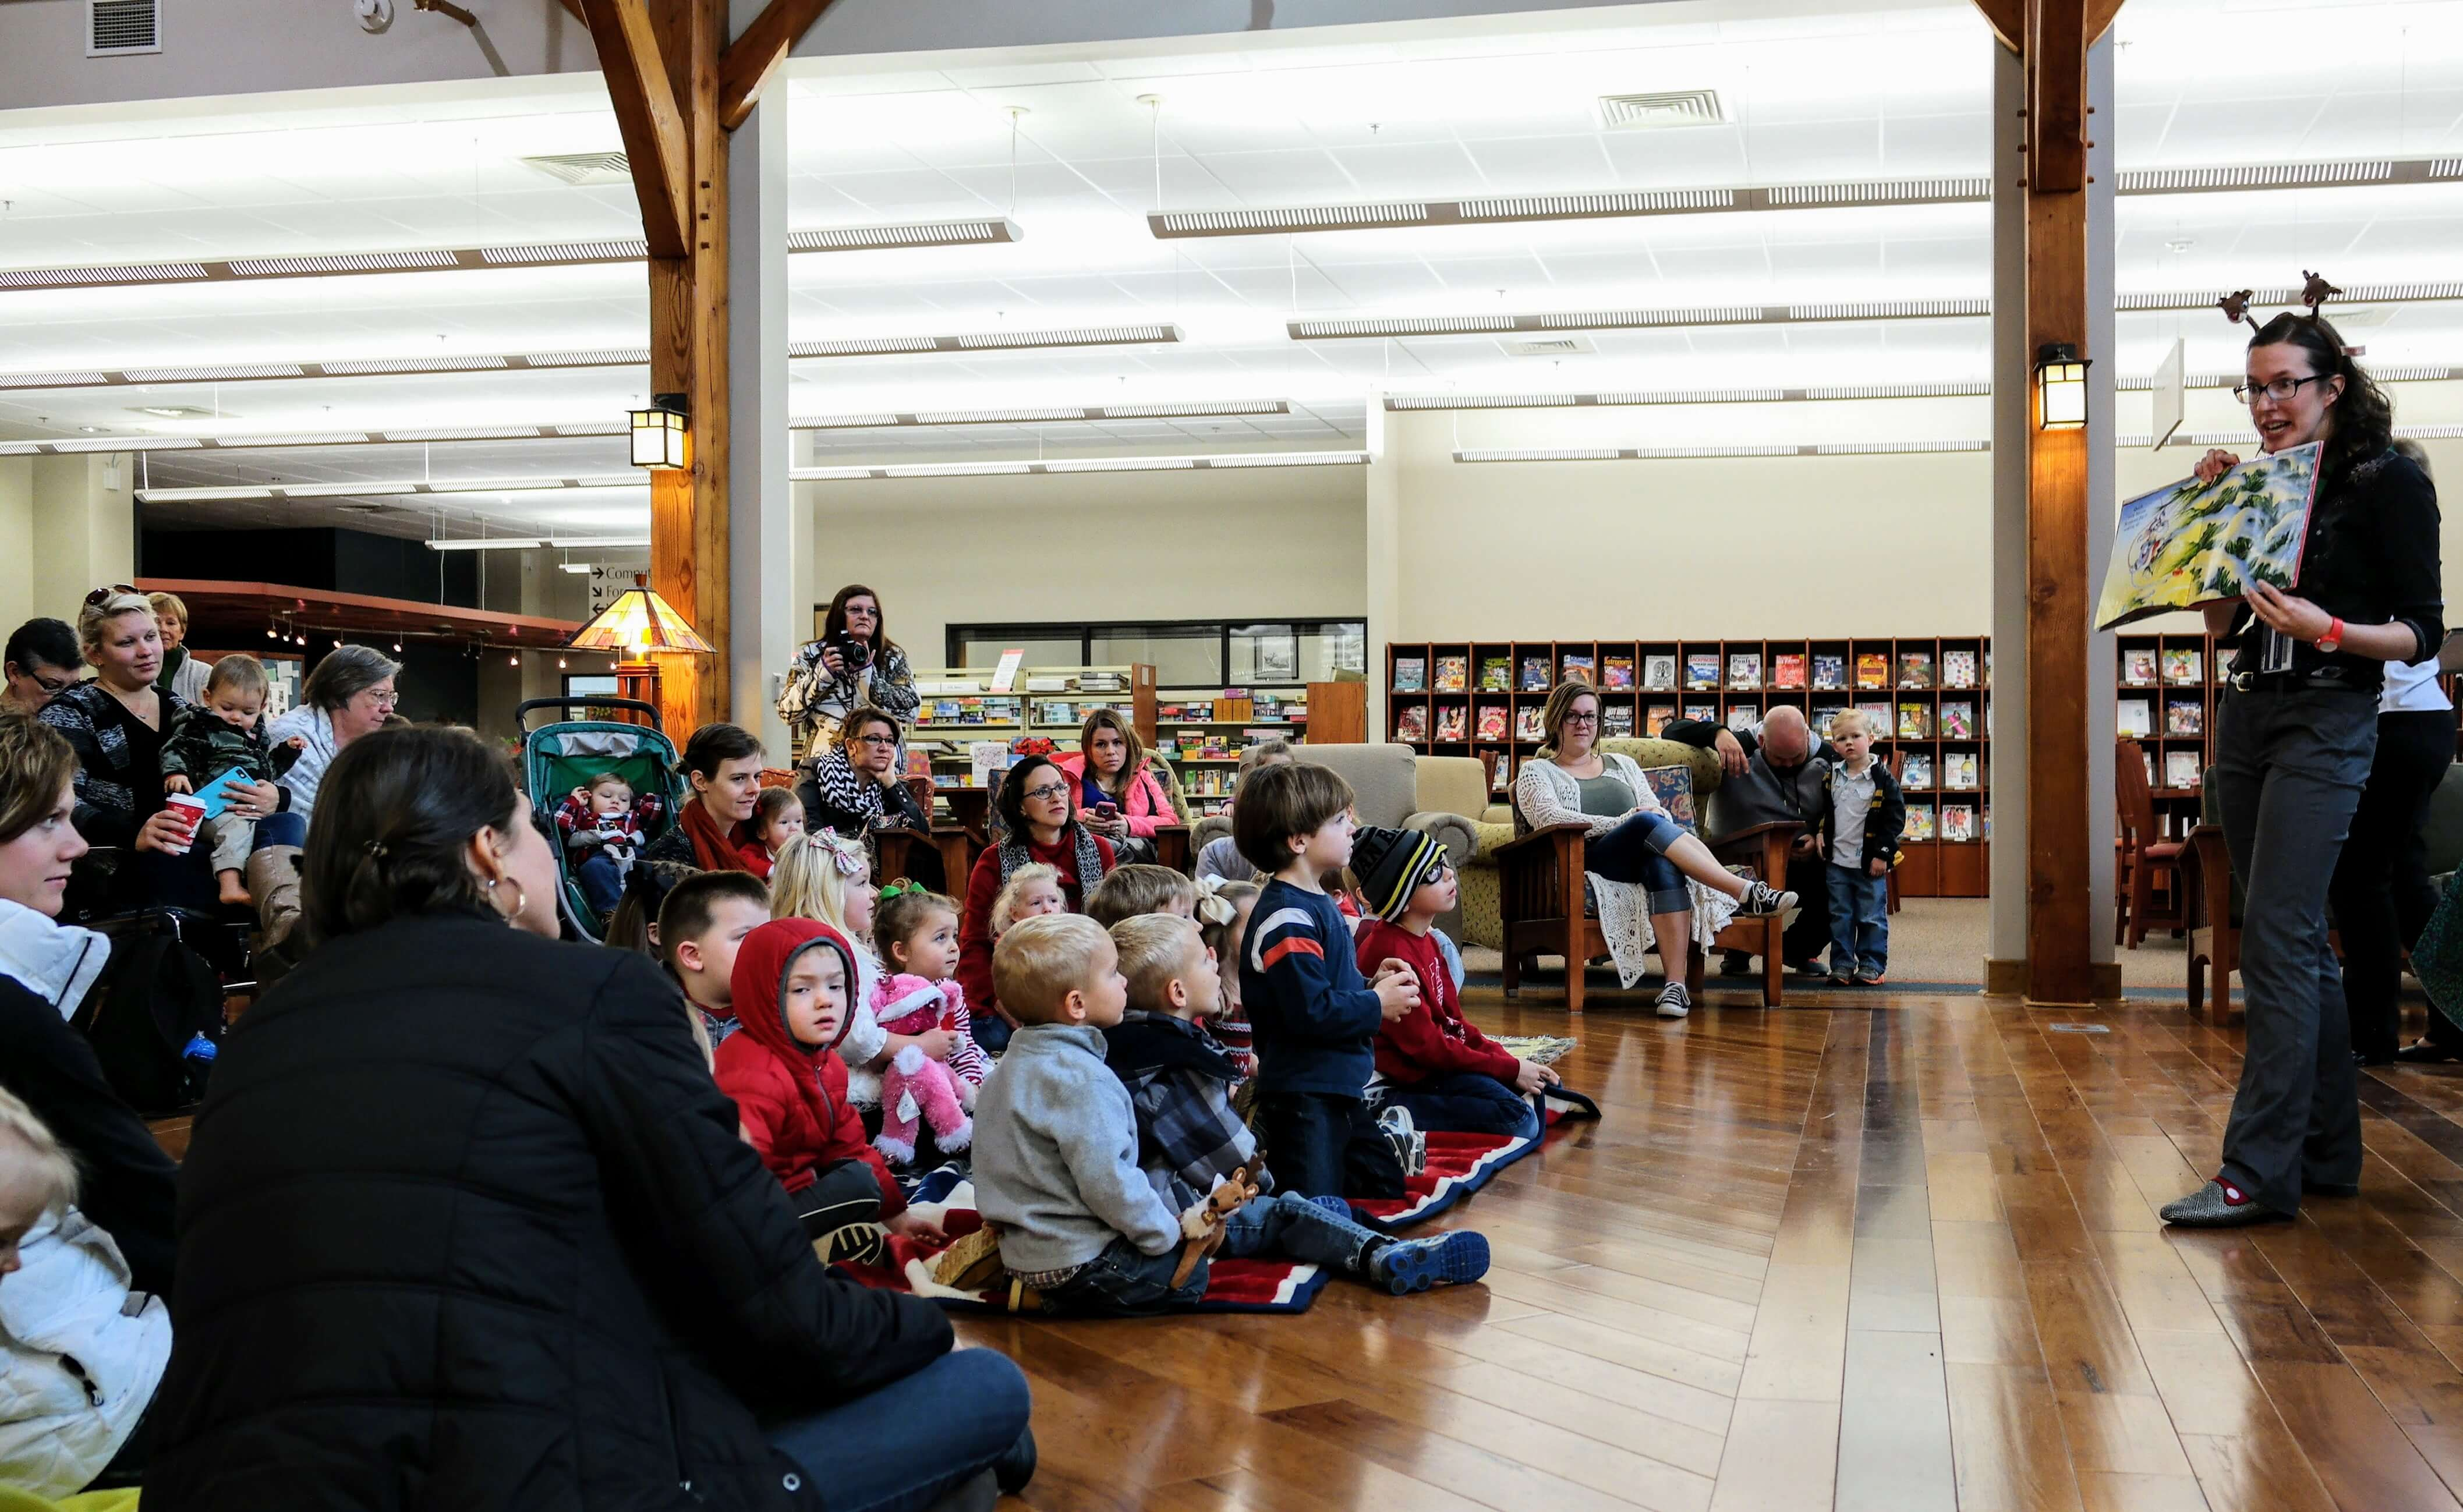 Children sang songs and read stories to celebrate the holidays